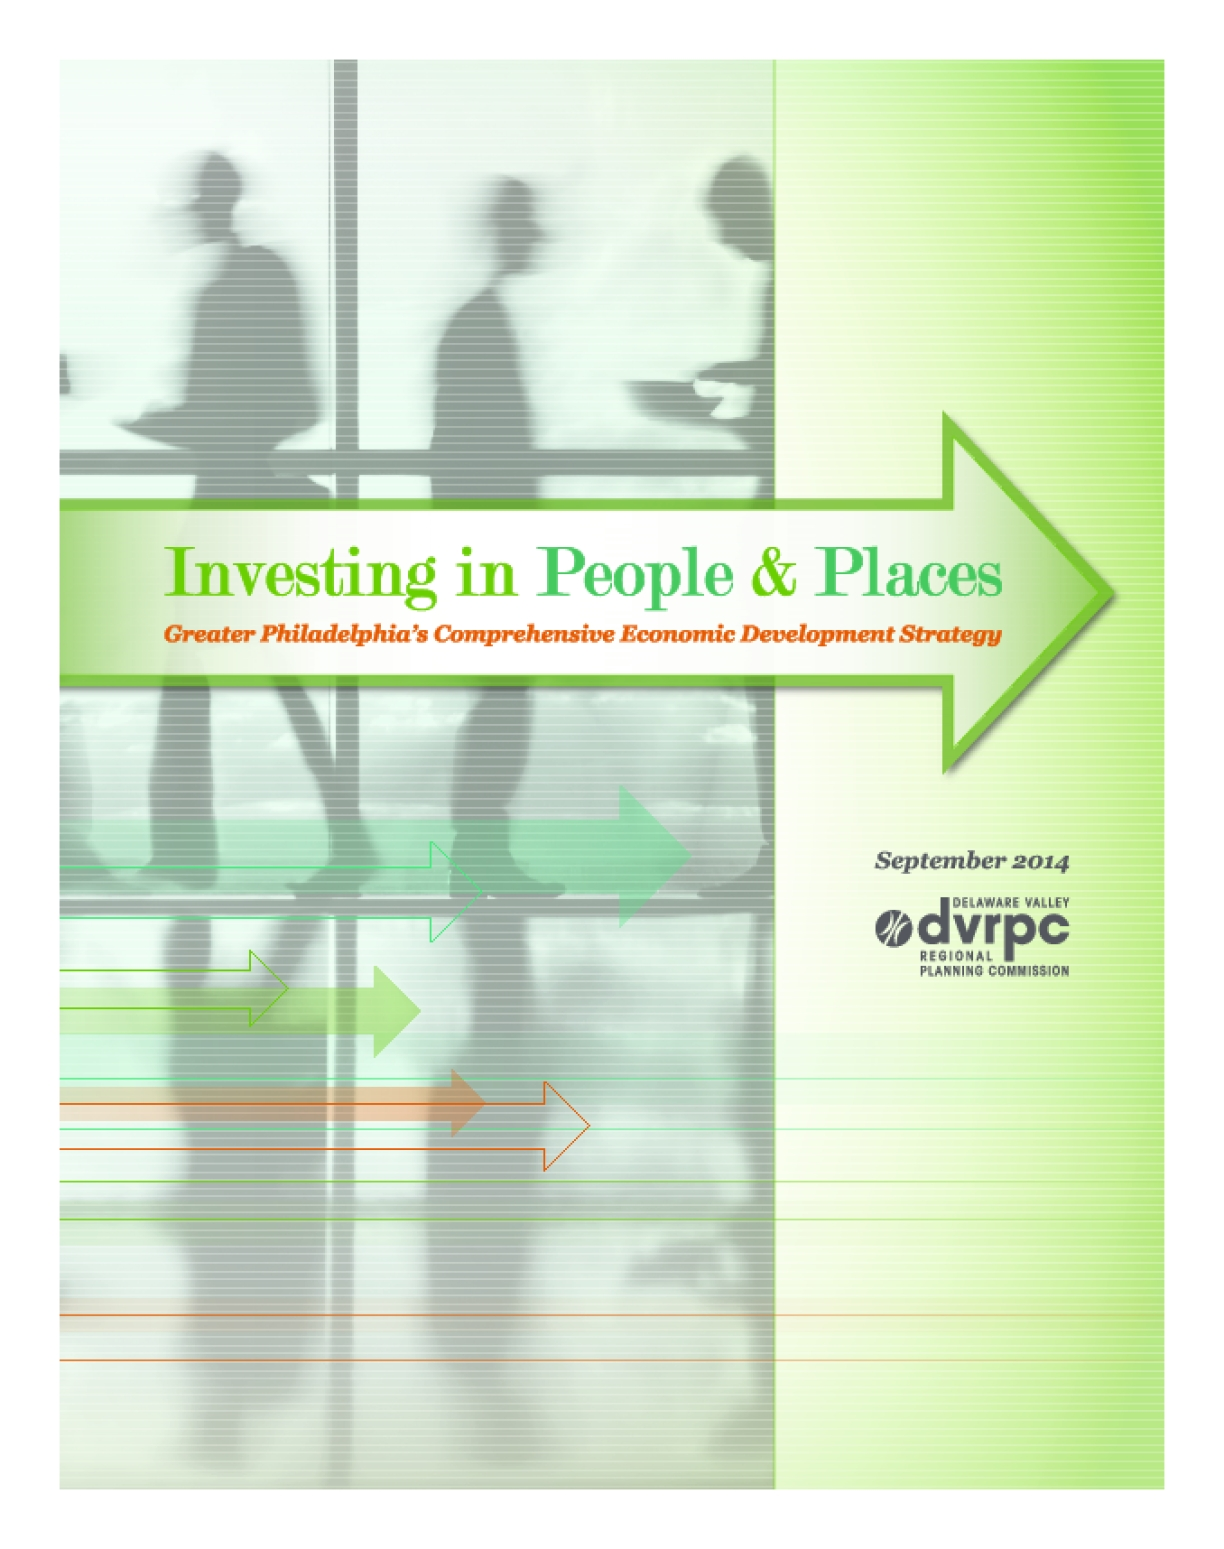 Investing in People and Places: Greater Philadelphia's Comprehensive Economic Development Strategy